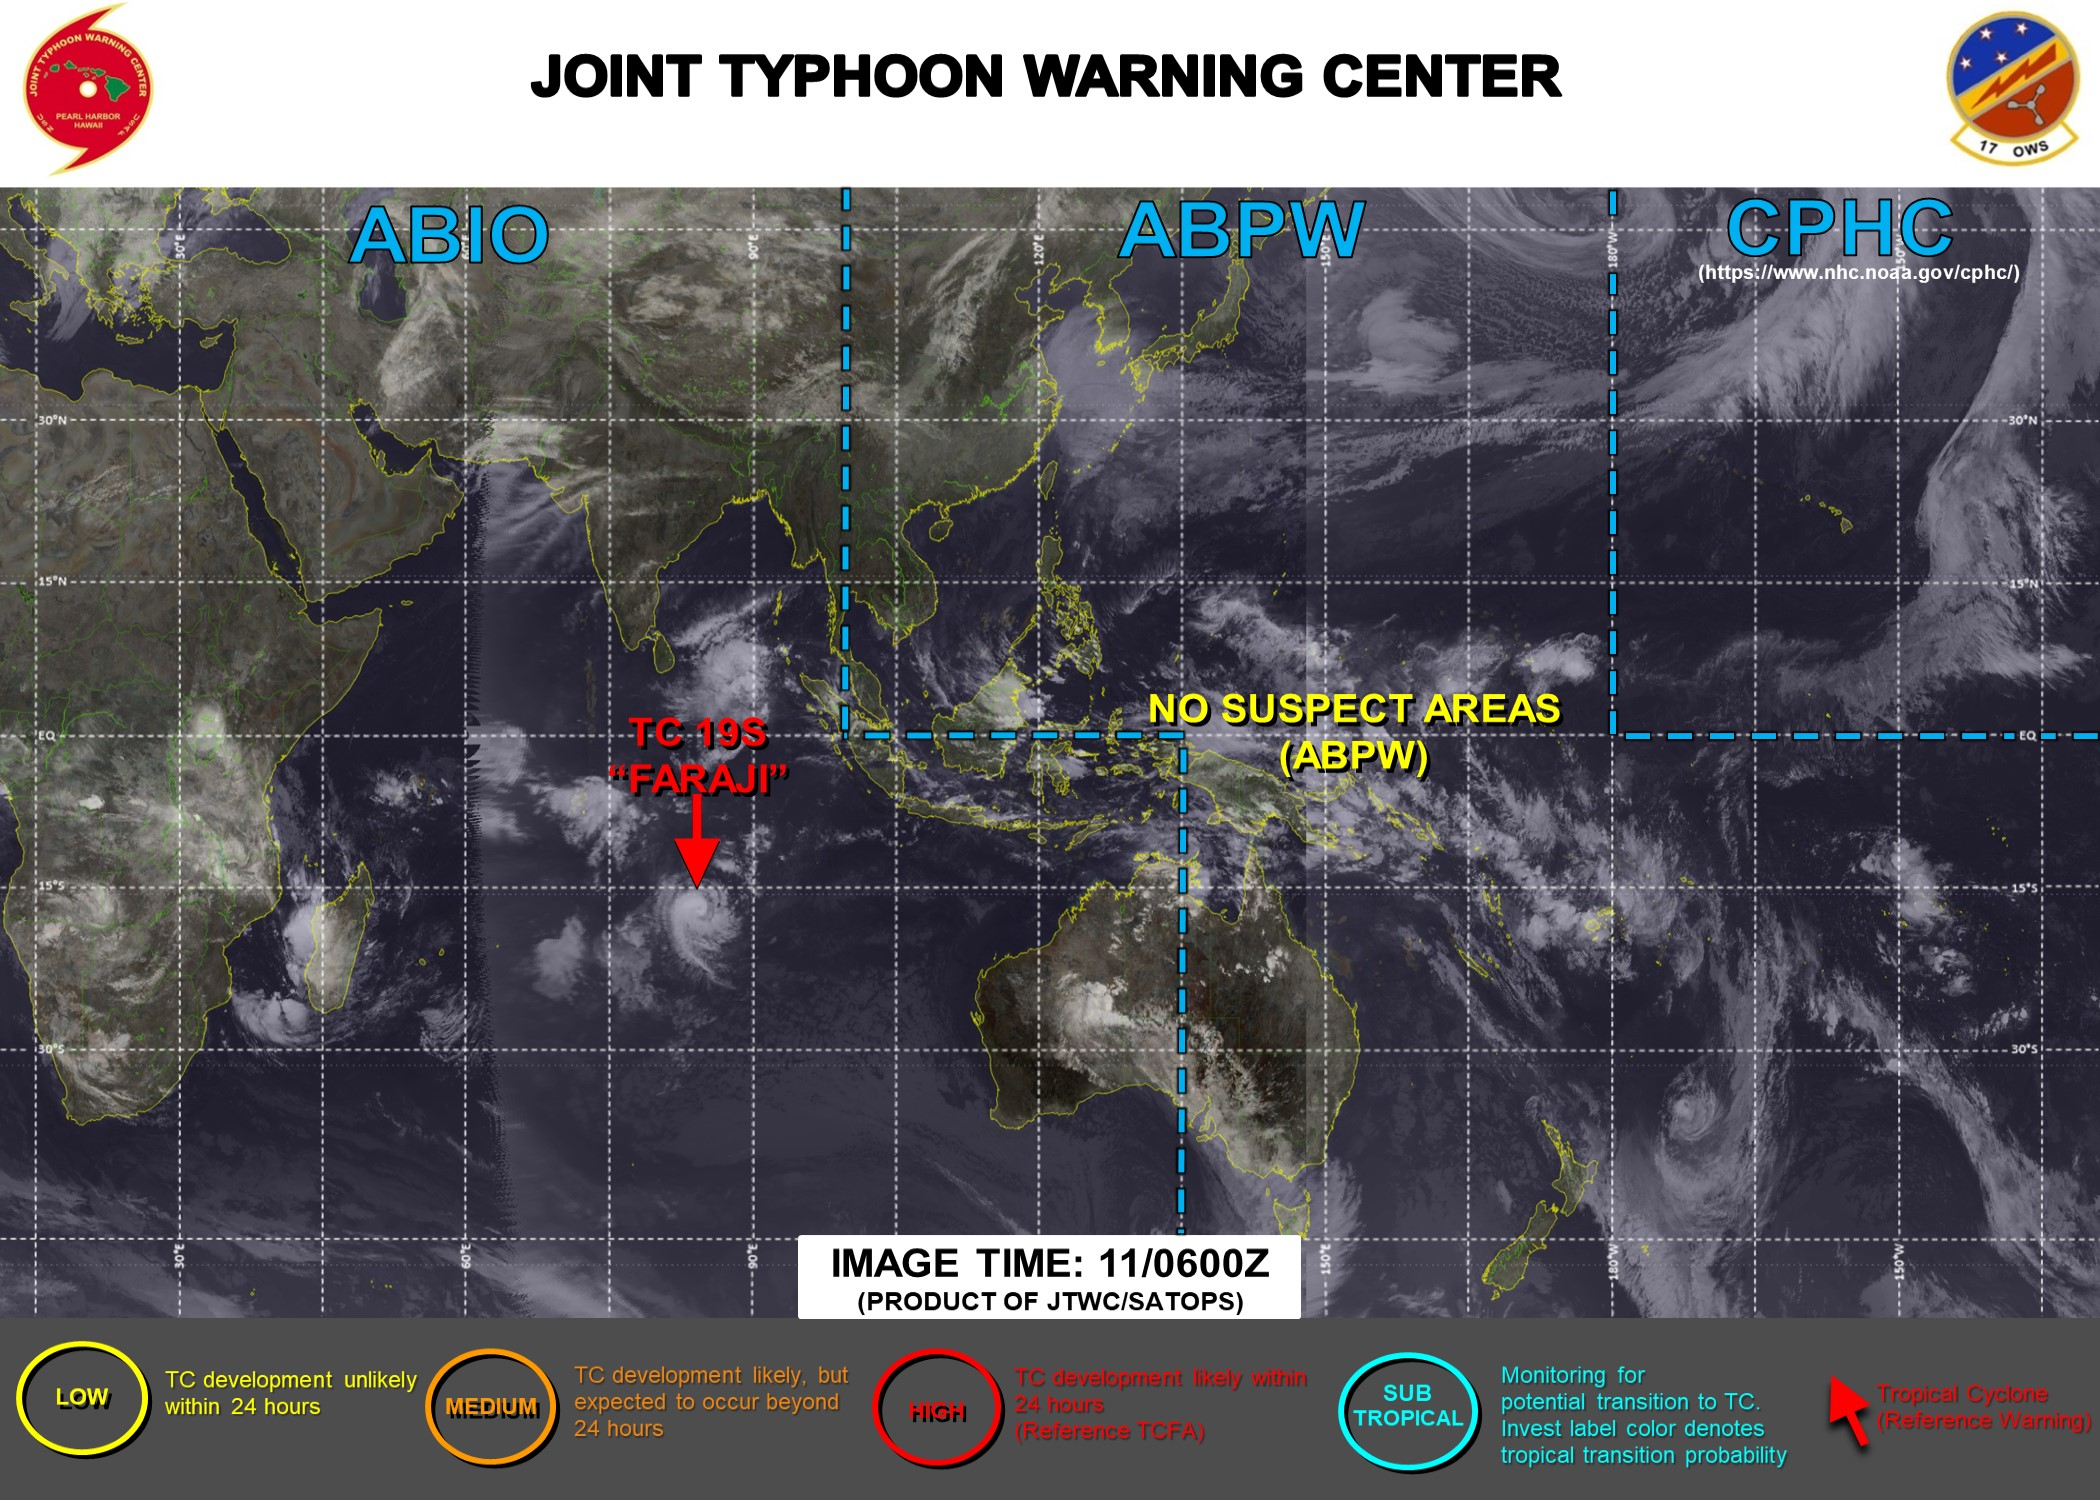 JTWC IS ISSUING 12HOURLY WARNINGS ON 19S(FARAJI). 3HOURLY SATELLITE BULLETINS ARE ISSUED FOR 19S. THEY WERE DISCONTINUED FOR 20P AT 10/1740UTC.